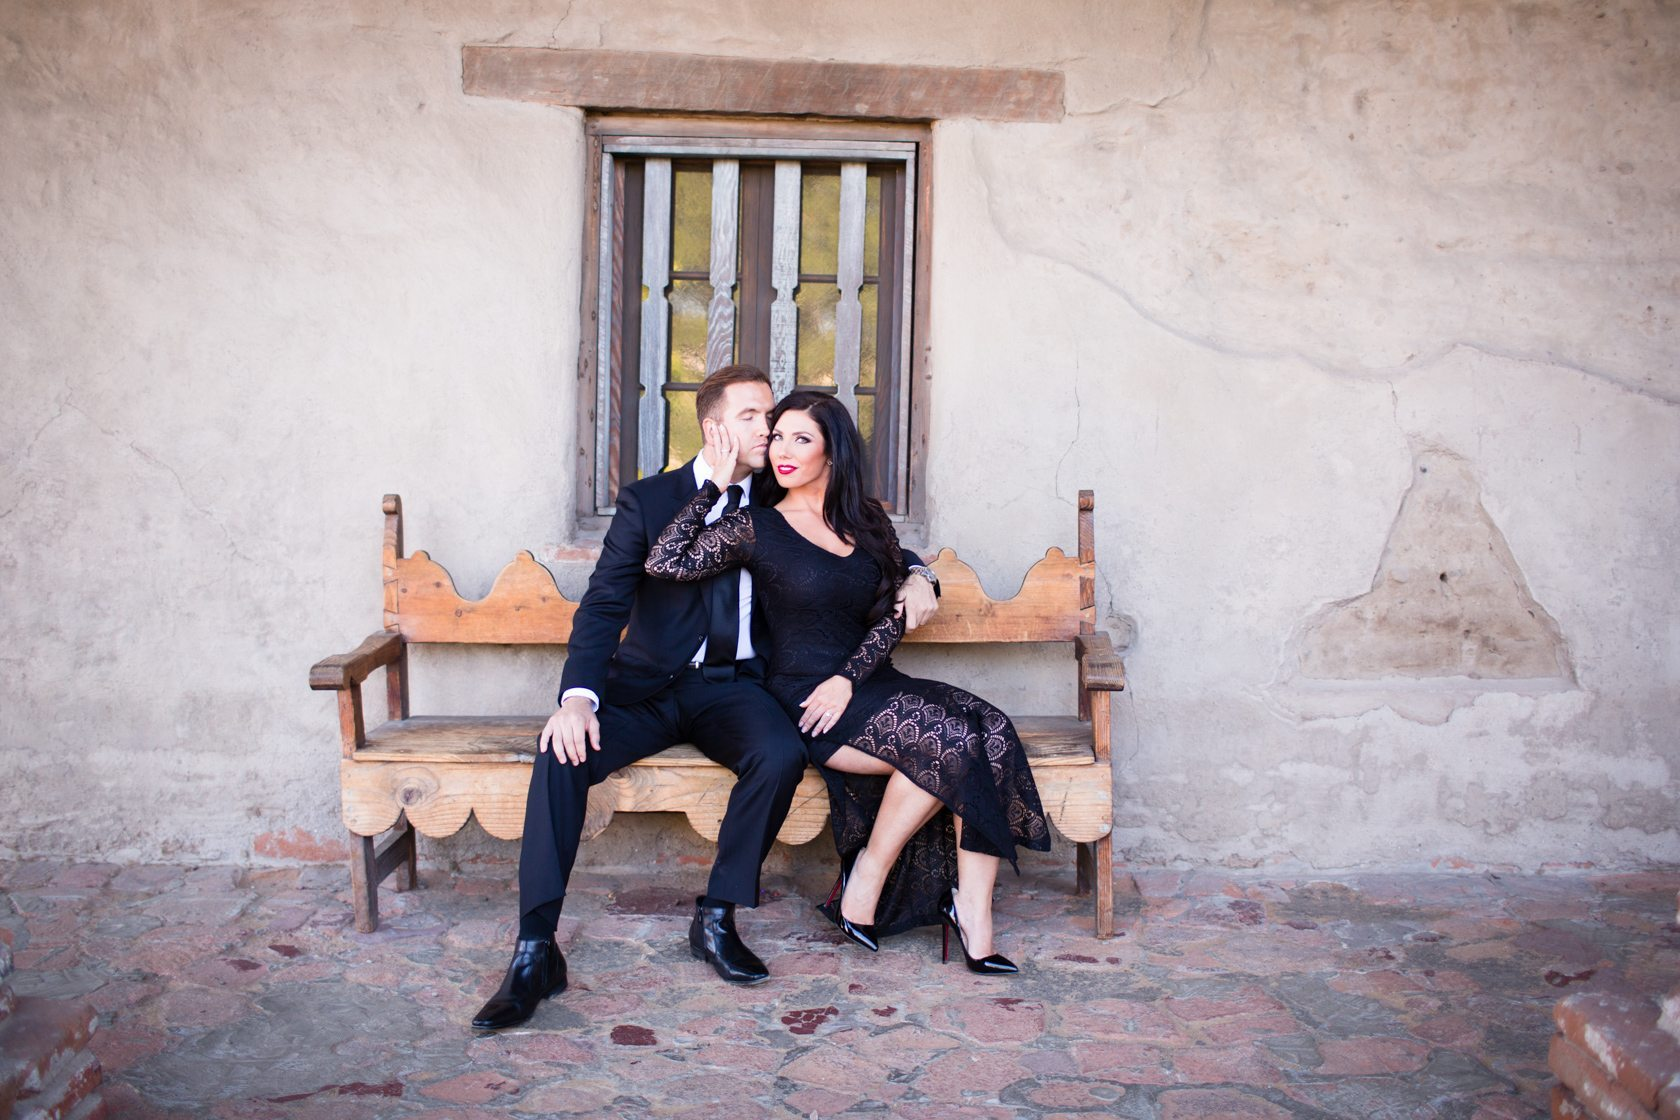 Mission_San_Juan_Capistrano_Engagement_Session_18.jpg